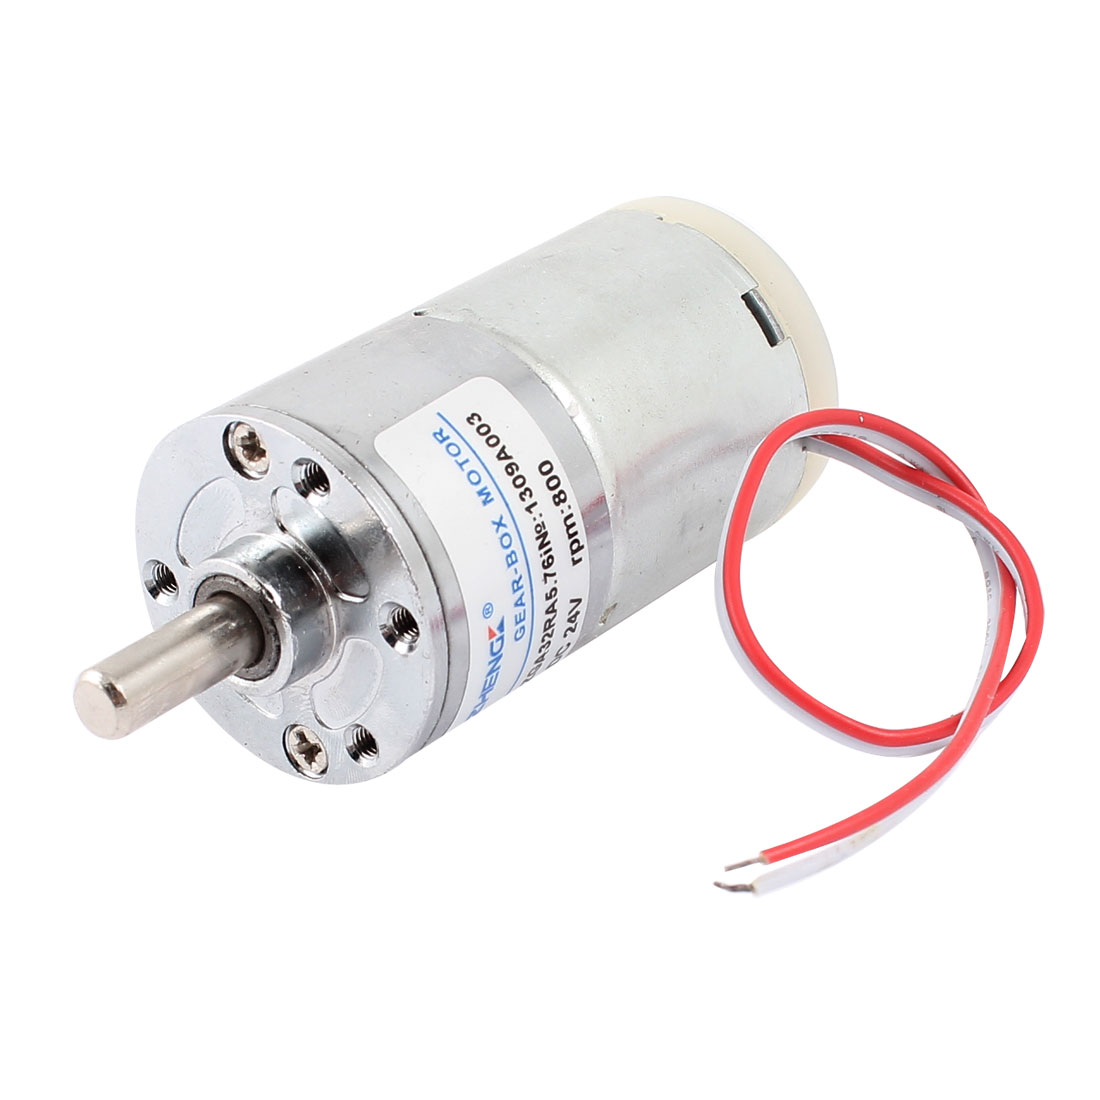 DC 24V 5000RPM Speed Reduce Wired Magnetic Electric Geared Box Motor